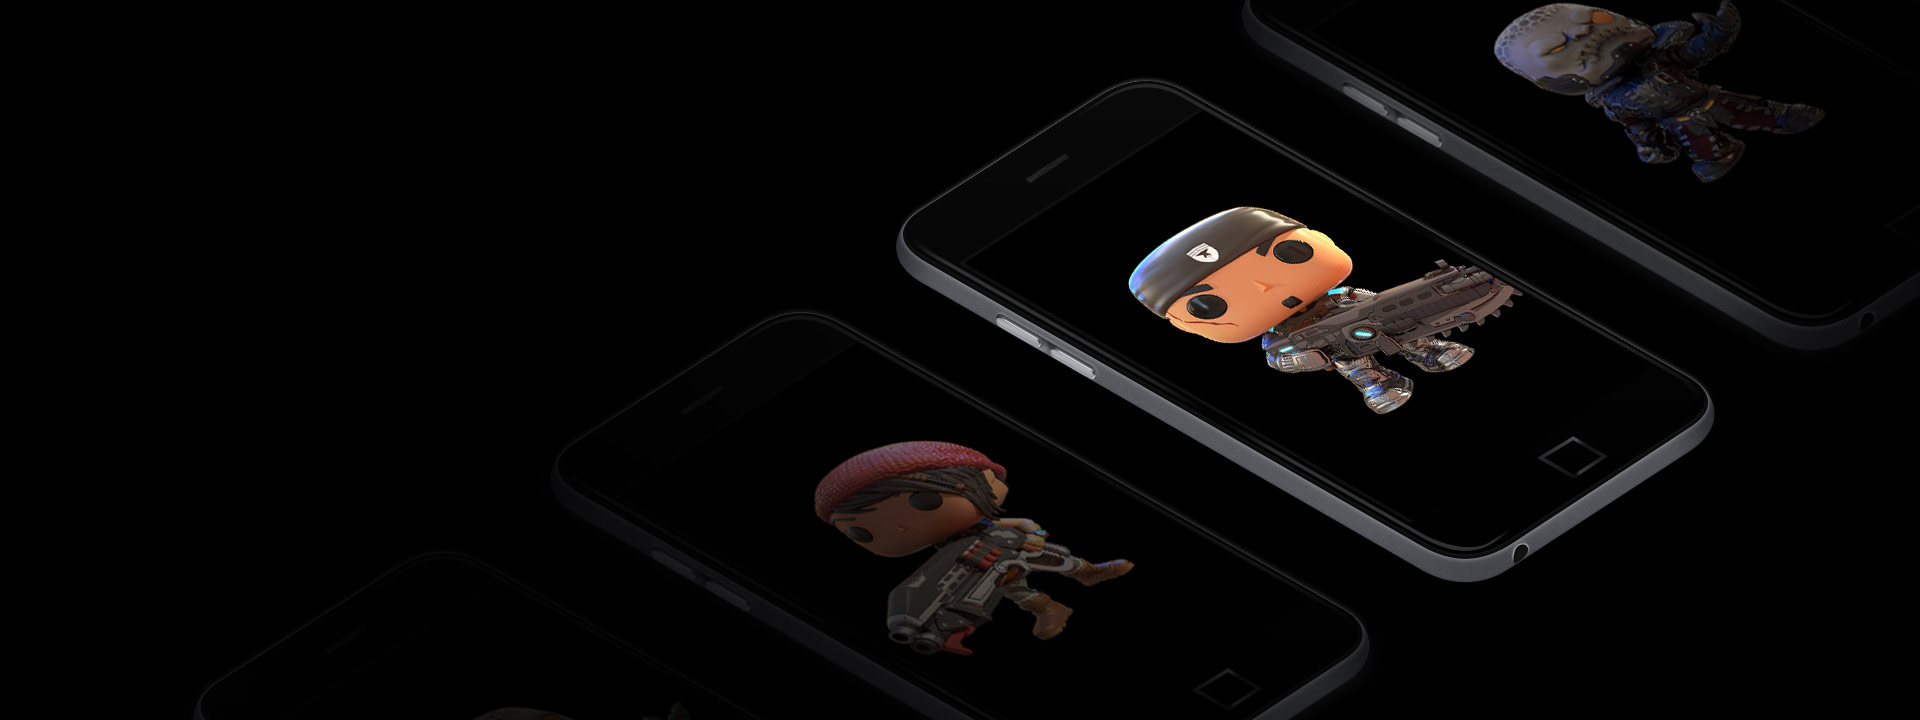 Gears of War Funko Pop statue pictured on a mobile phone